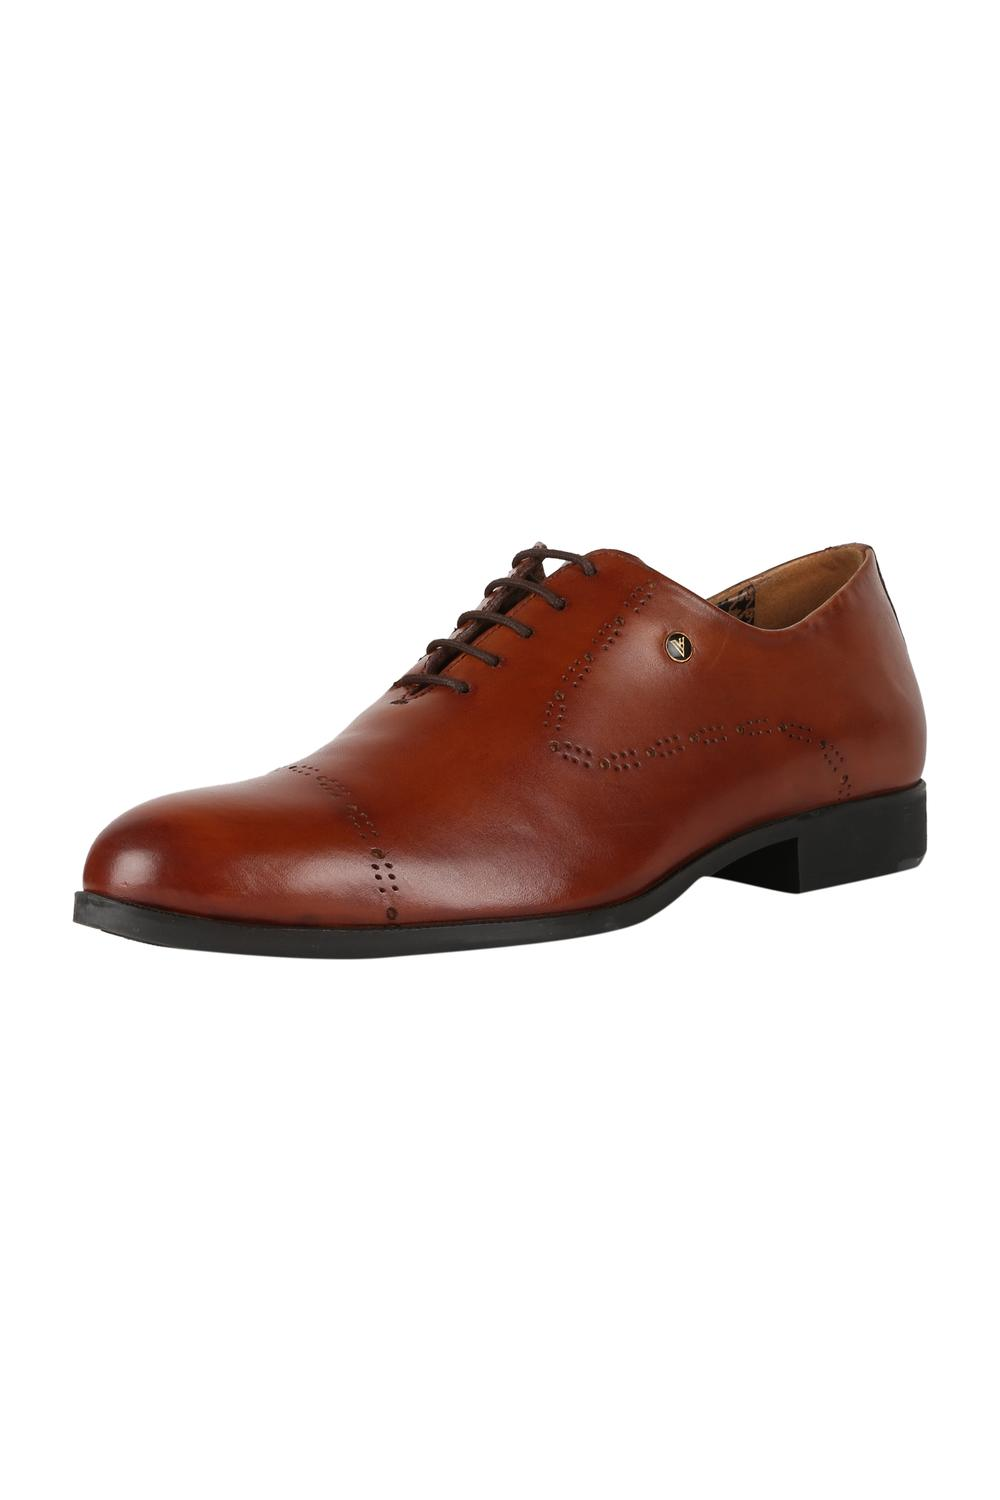 Mens Footwear Buy Van Heusen Mens Footwear Online